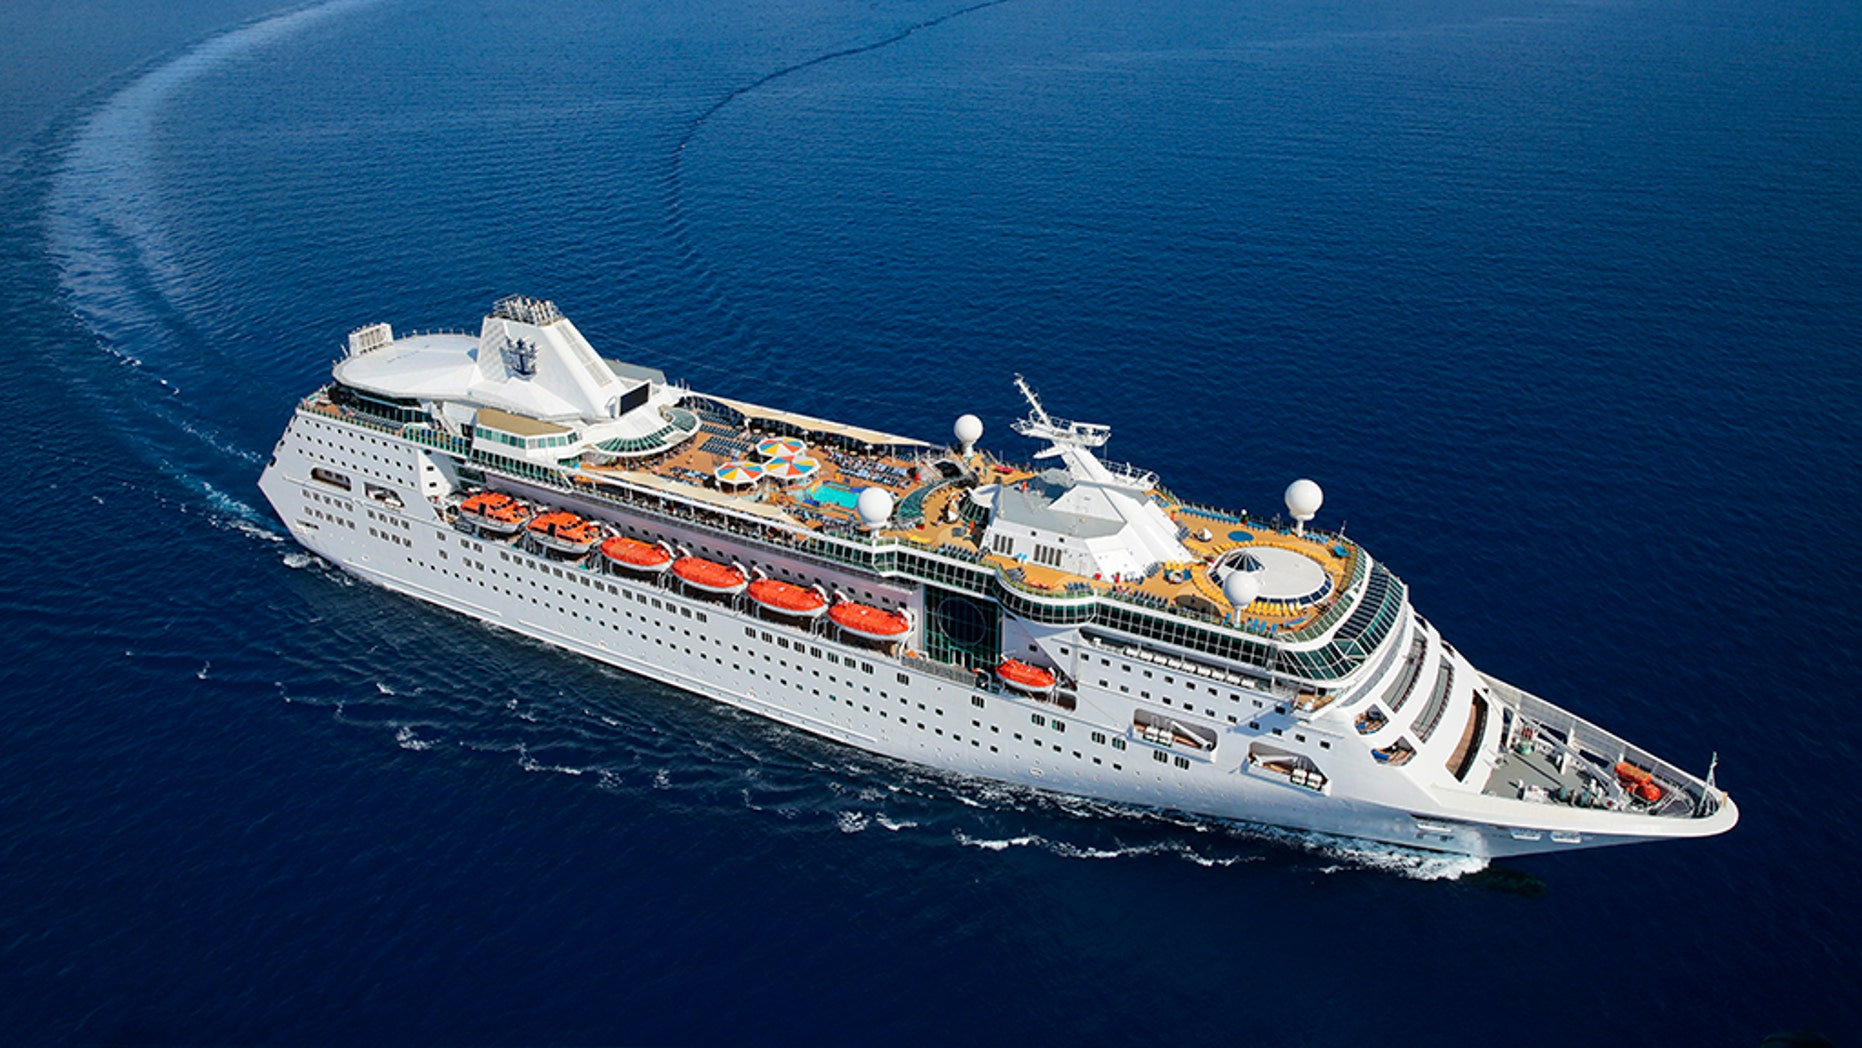 NE, Empress of the Seas, aerial, offshore the Florida Keys, front 3''4 view, starboard side, ocean, sea, sky